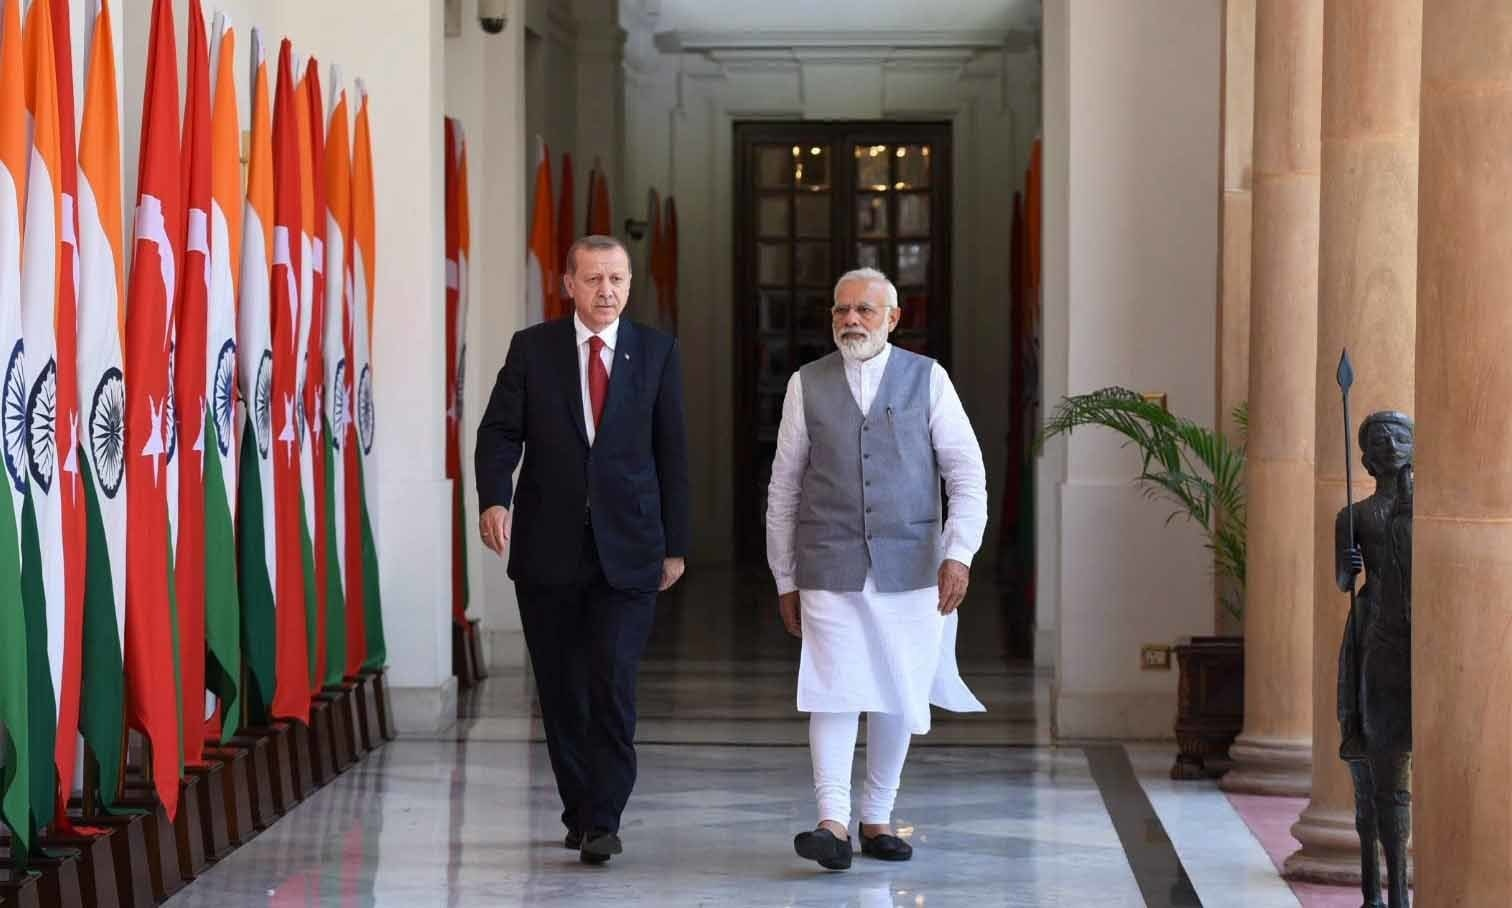 India summons Turkish envoy over Erdogan's remarks on Kashmir